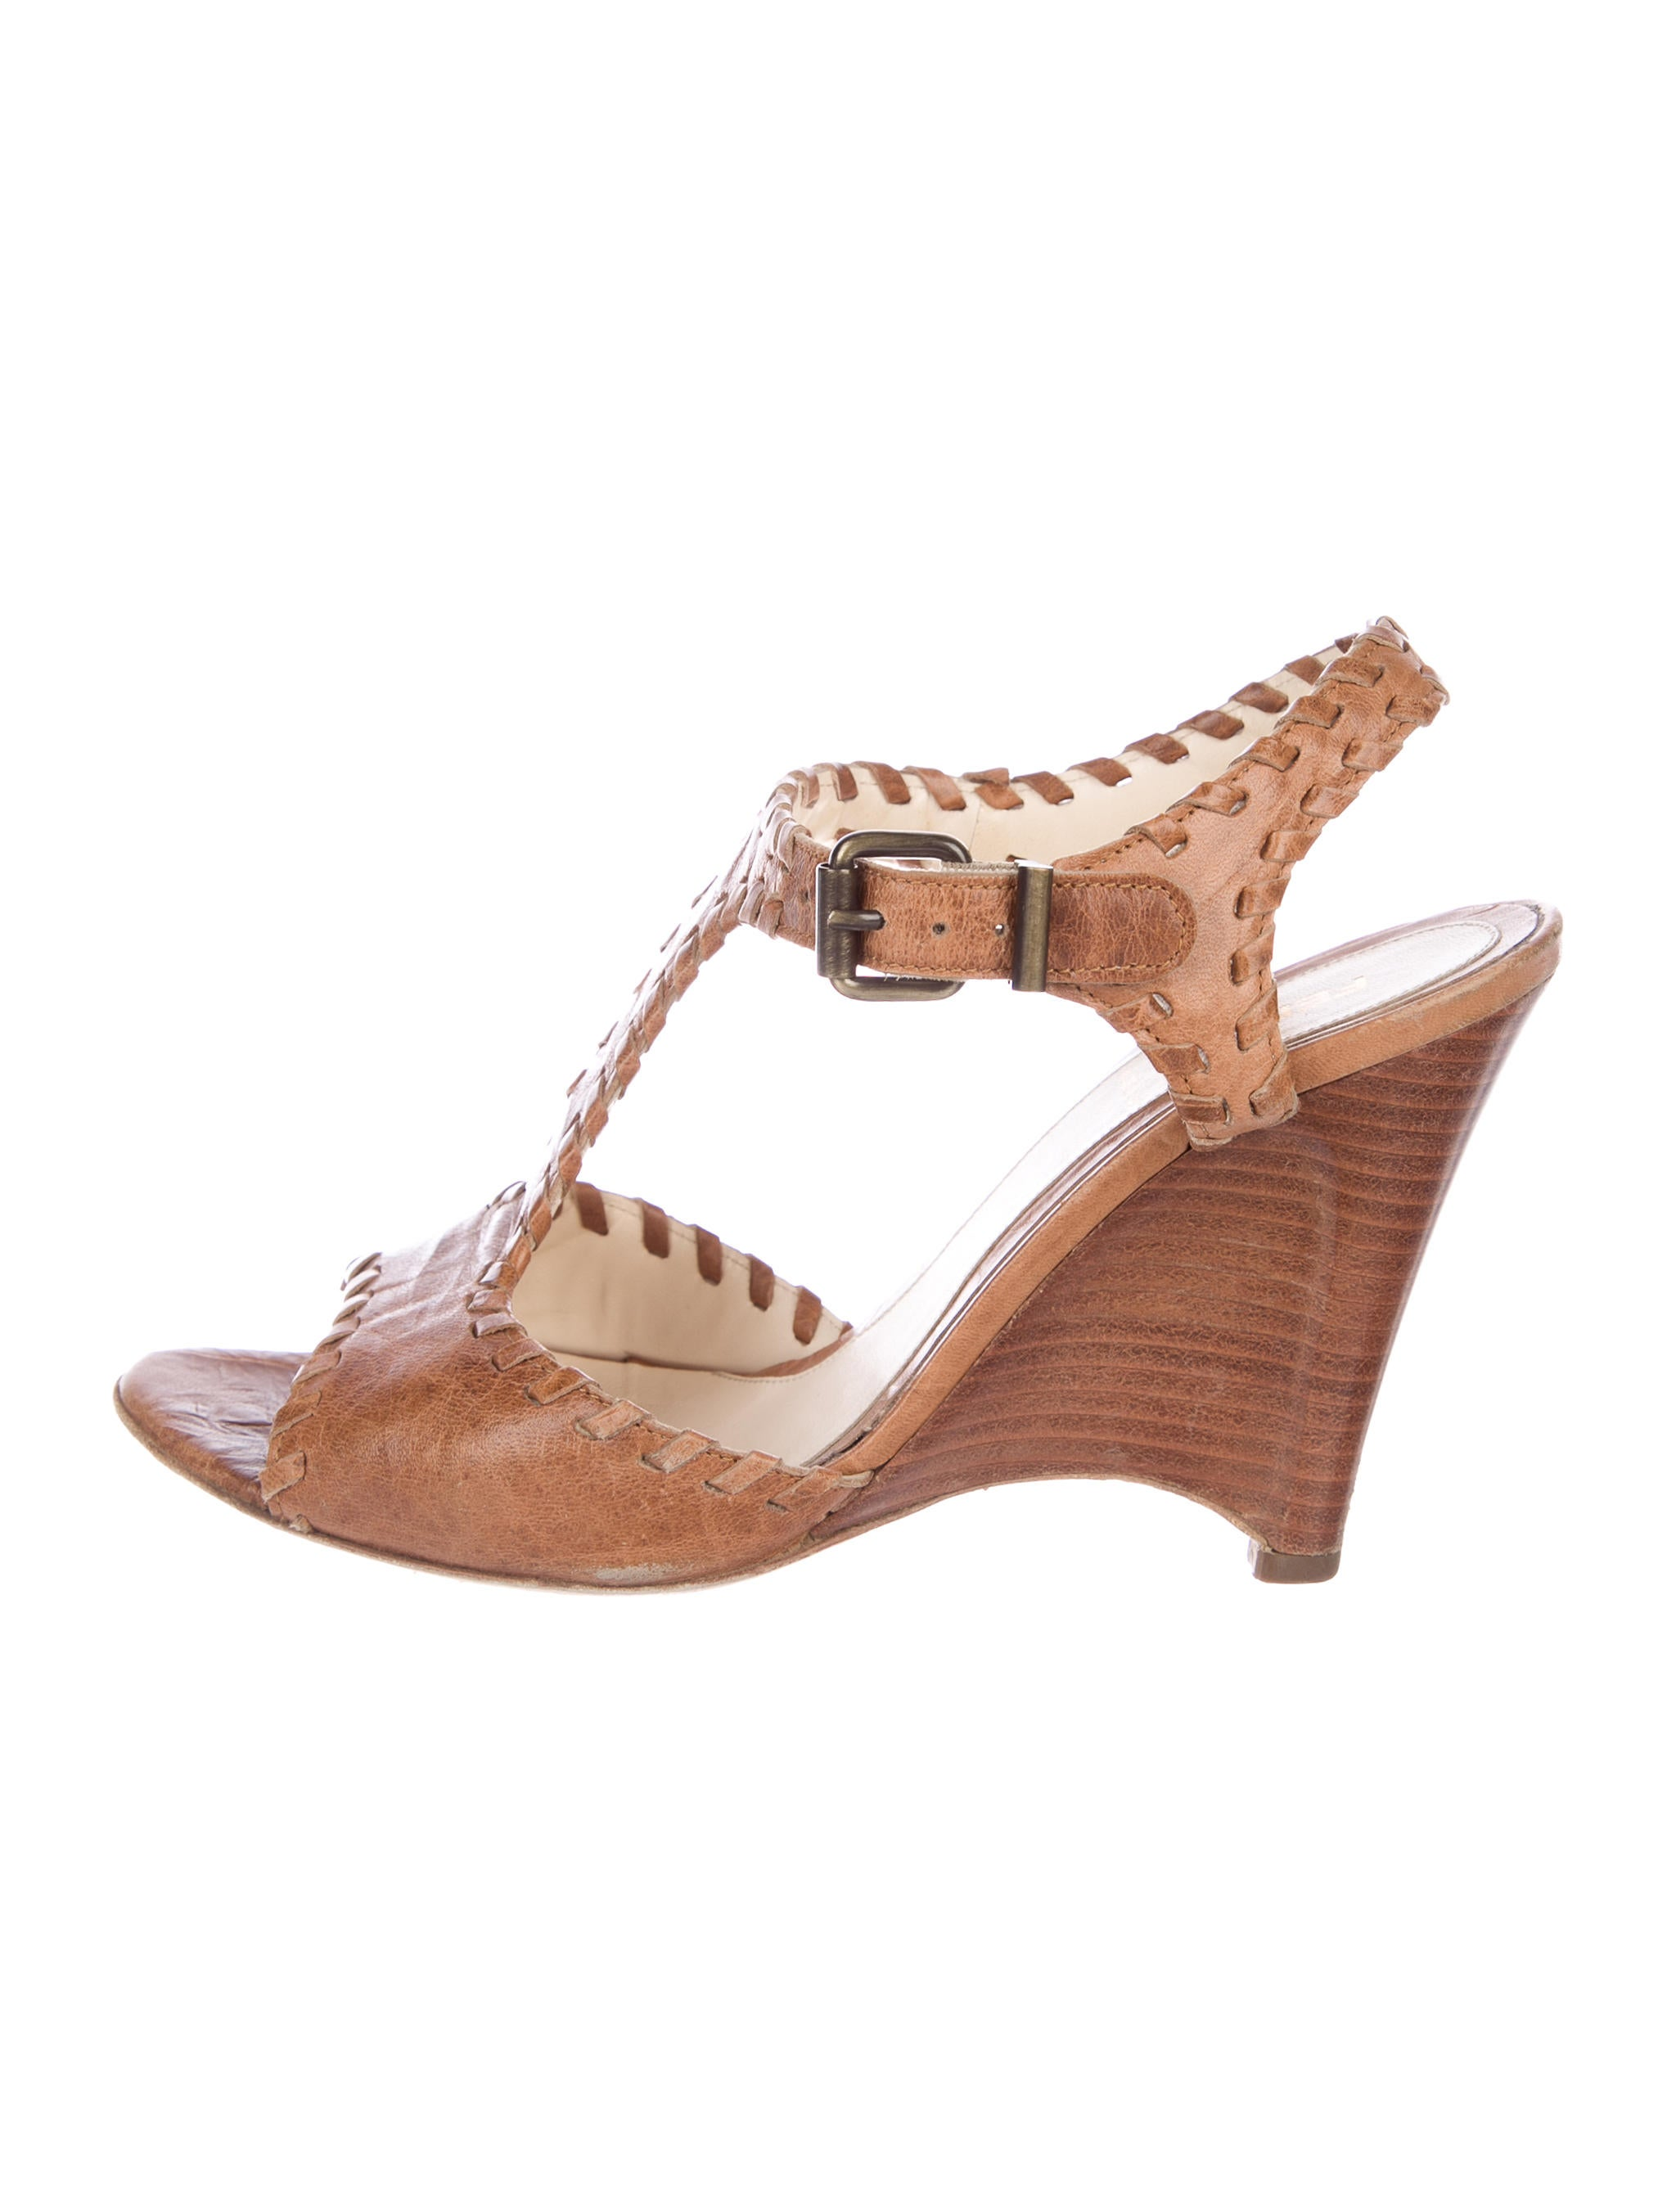 Fendi Leather Cutout Wedges discount price ANX3Ot9